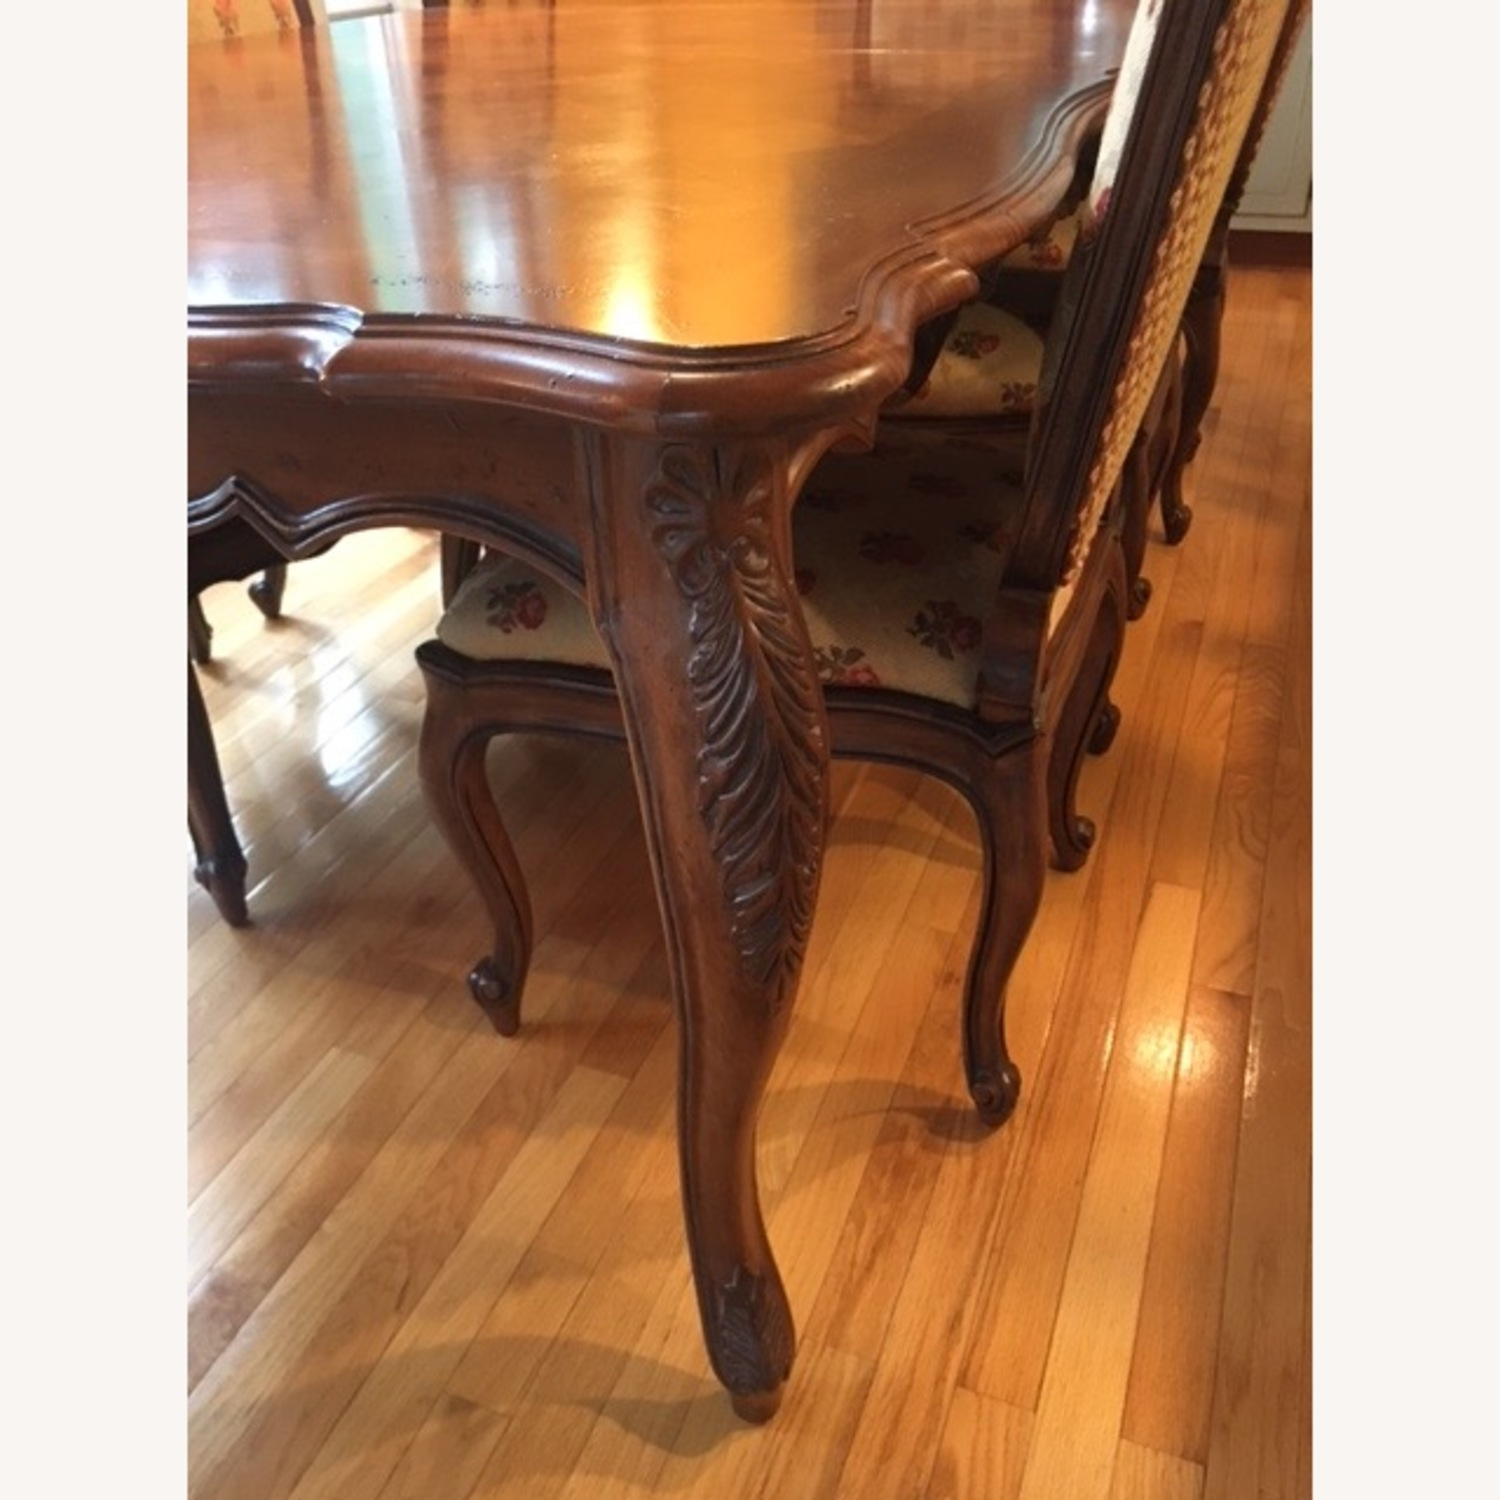 Century Harden Extendable Dining Table and Chairs - image-2